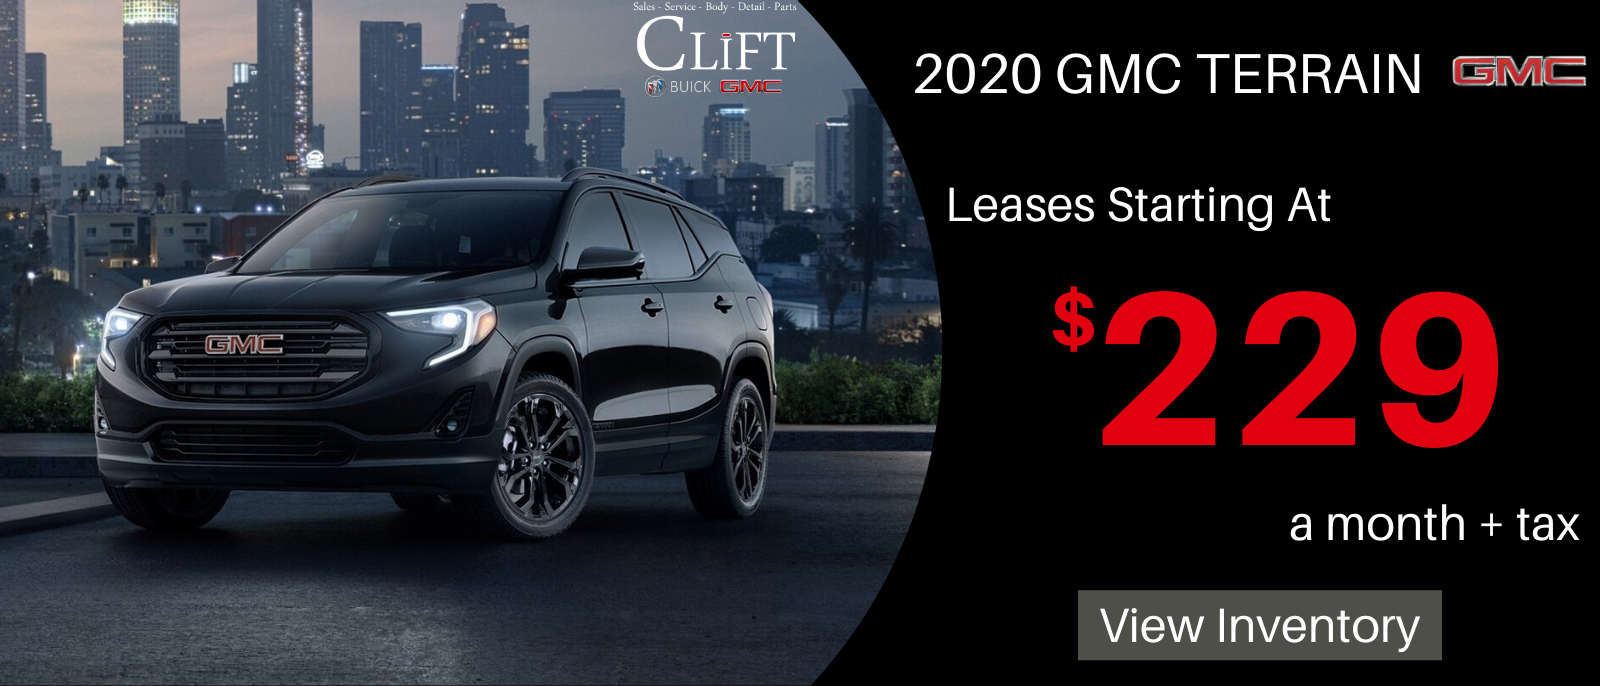 Lease 229 Month Or Save 9 259 Off Msrp In 2020 Gmc Terrain